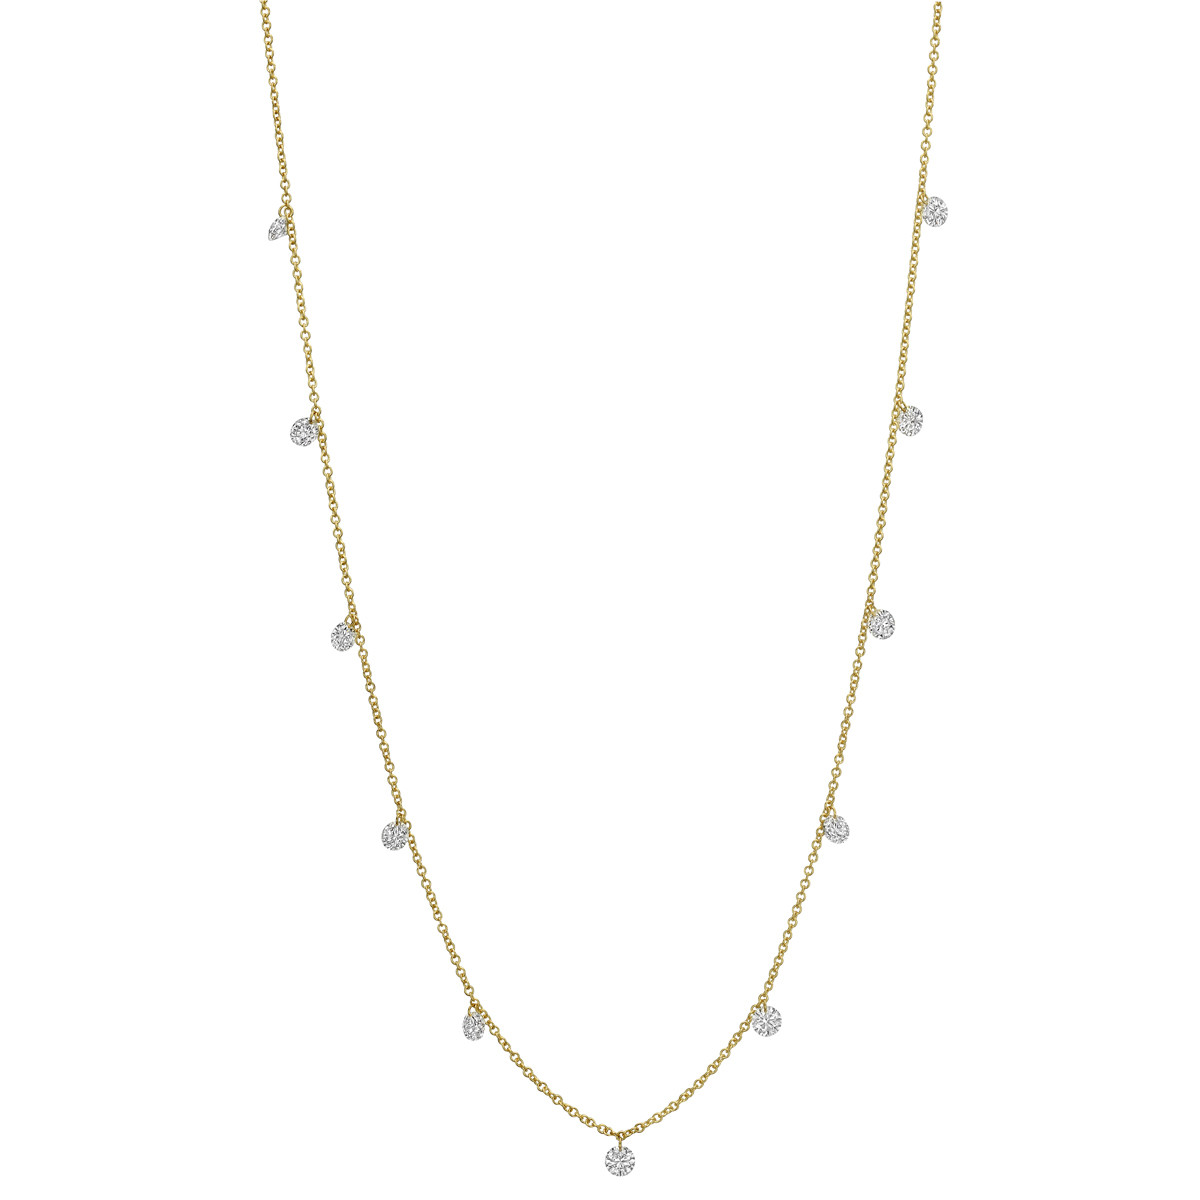 18k Yellow Gold 'Floating' Diamond Necklace